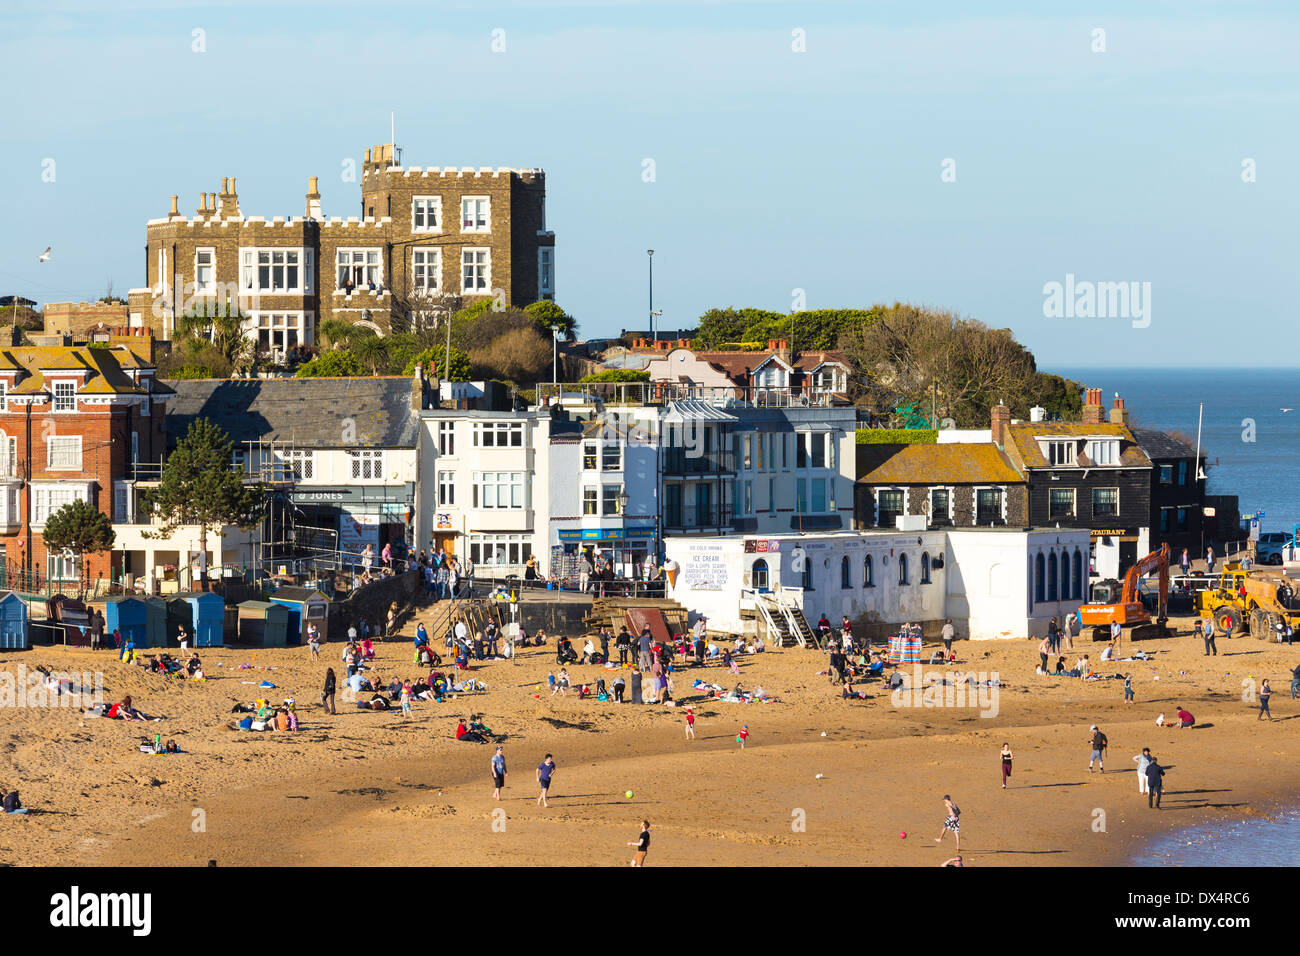 Broadstairs Beach with Bleak House - Stock Image